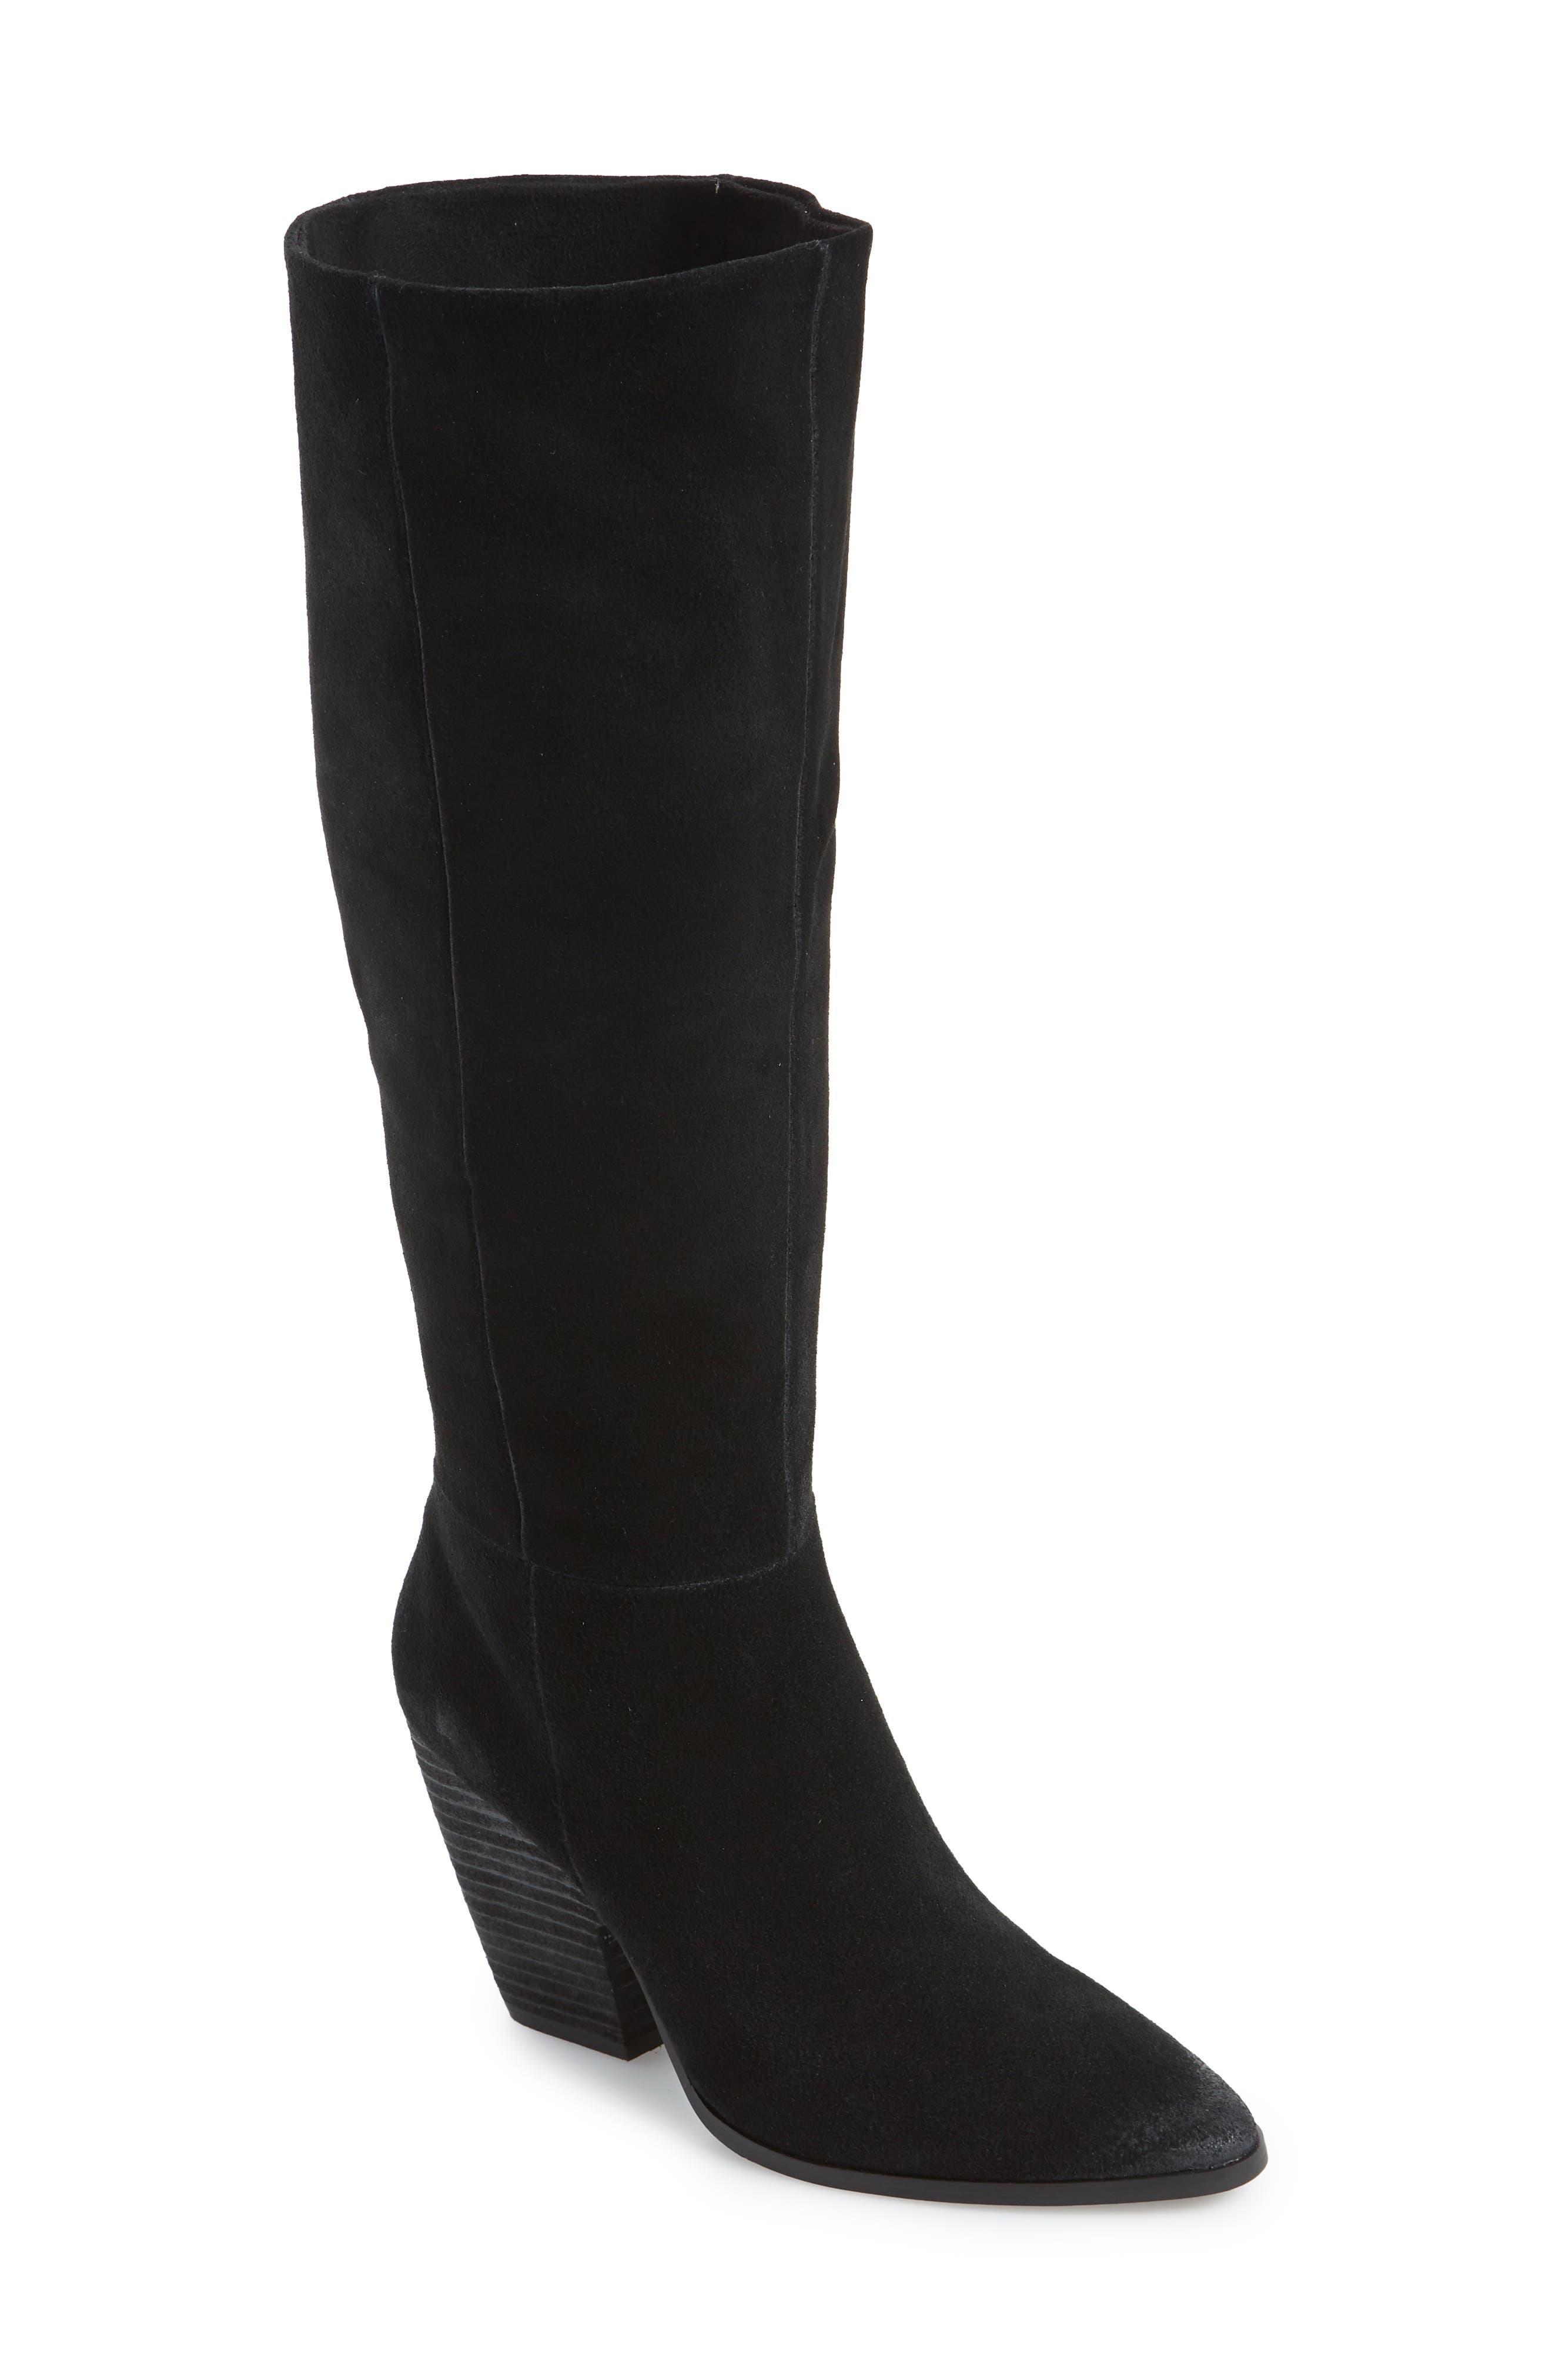 Nyles Knee High Boot,                             Main thumbnail 1, color,                             BLACK SUEDE